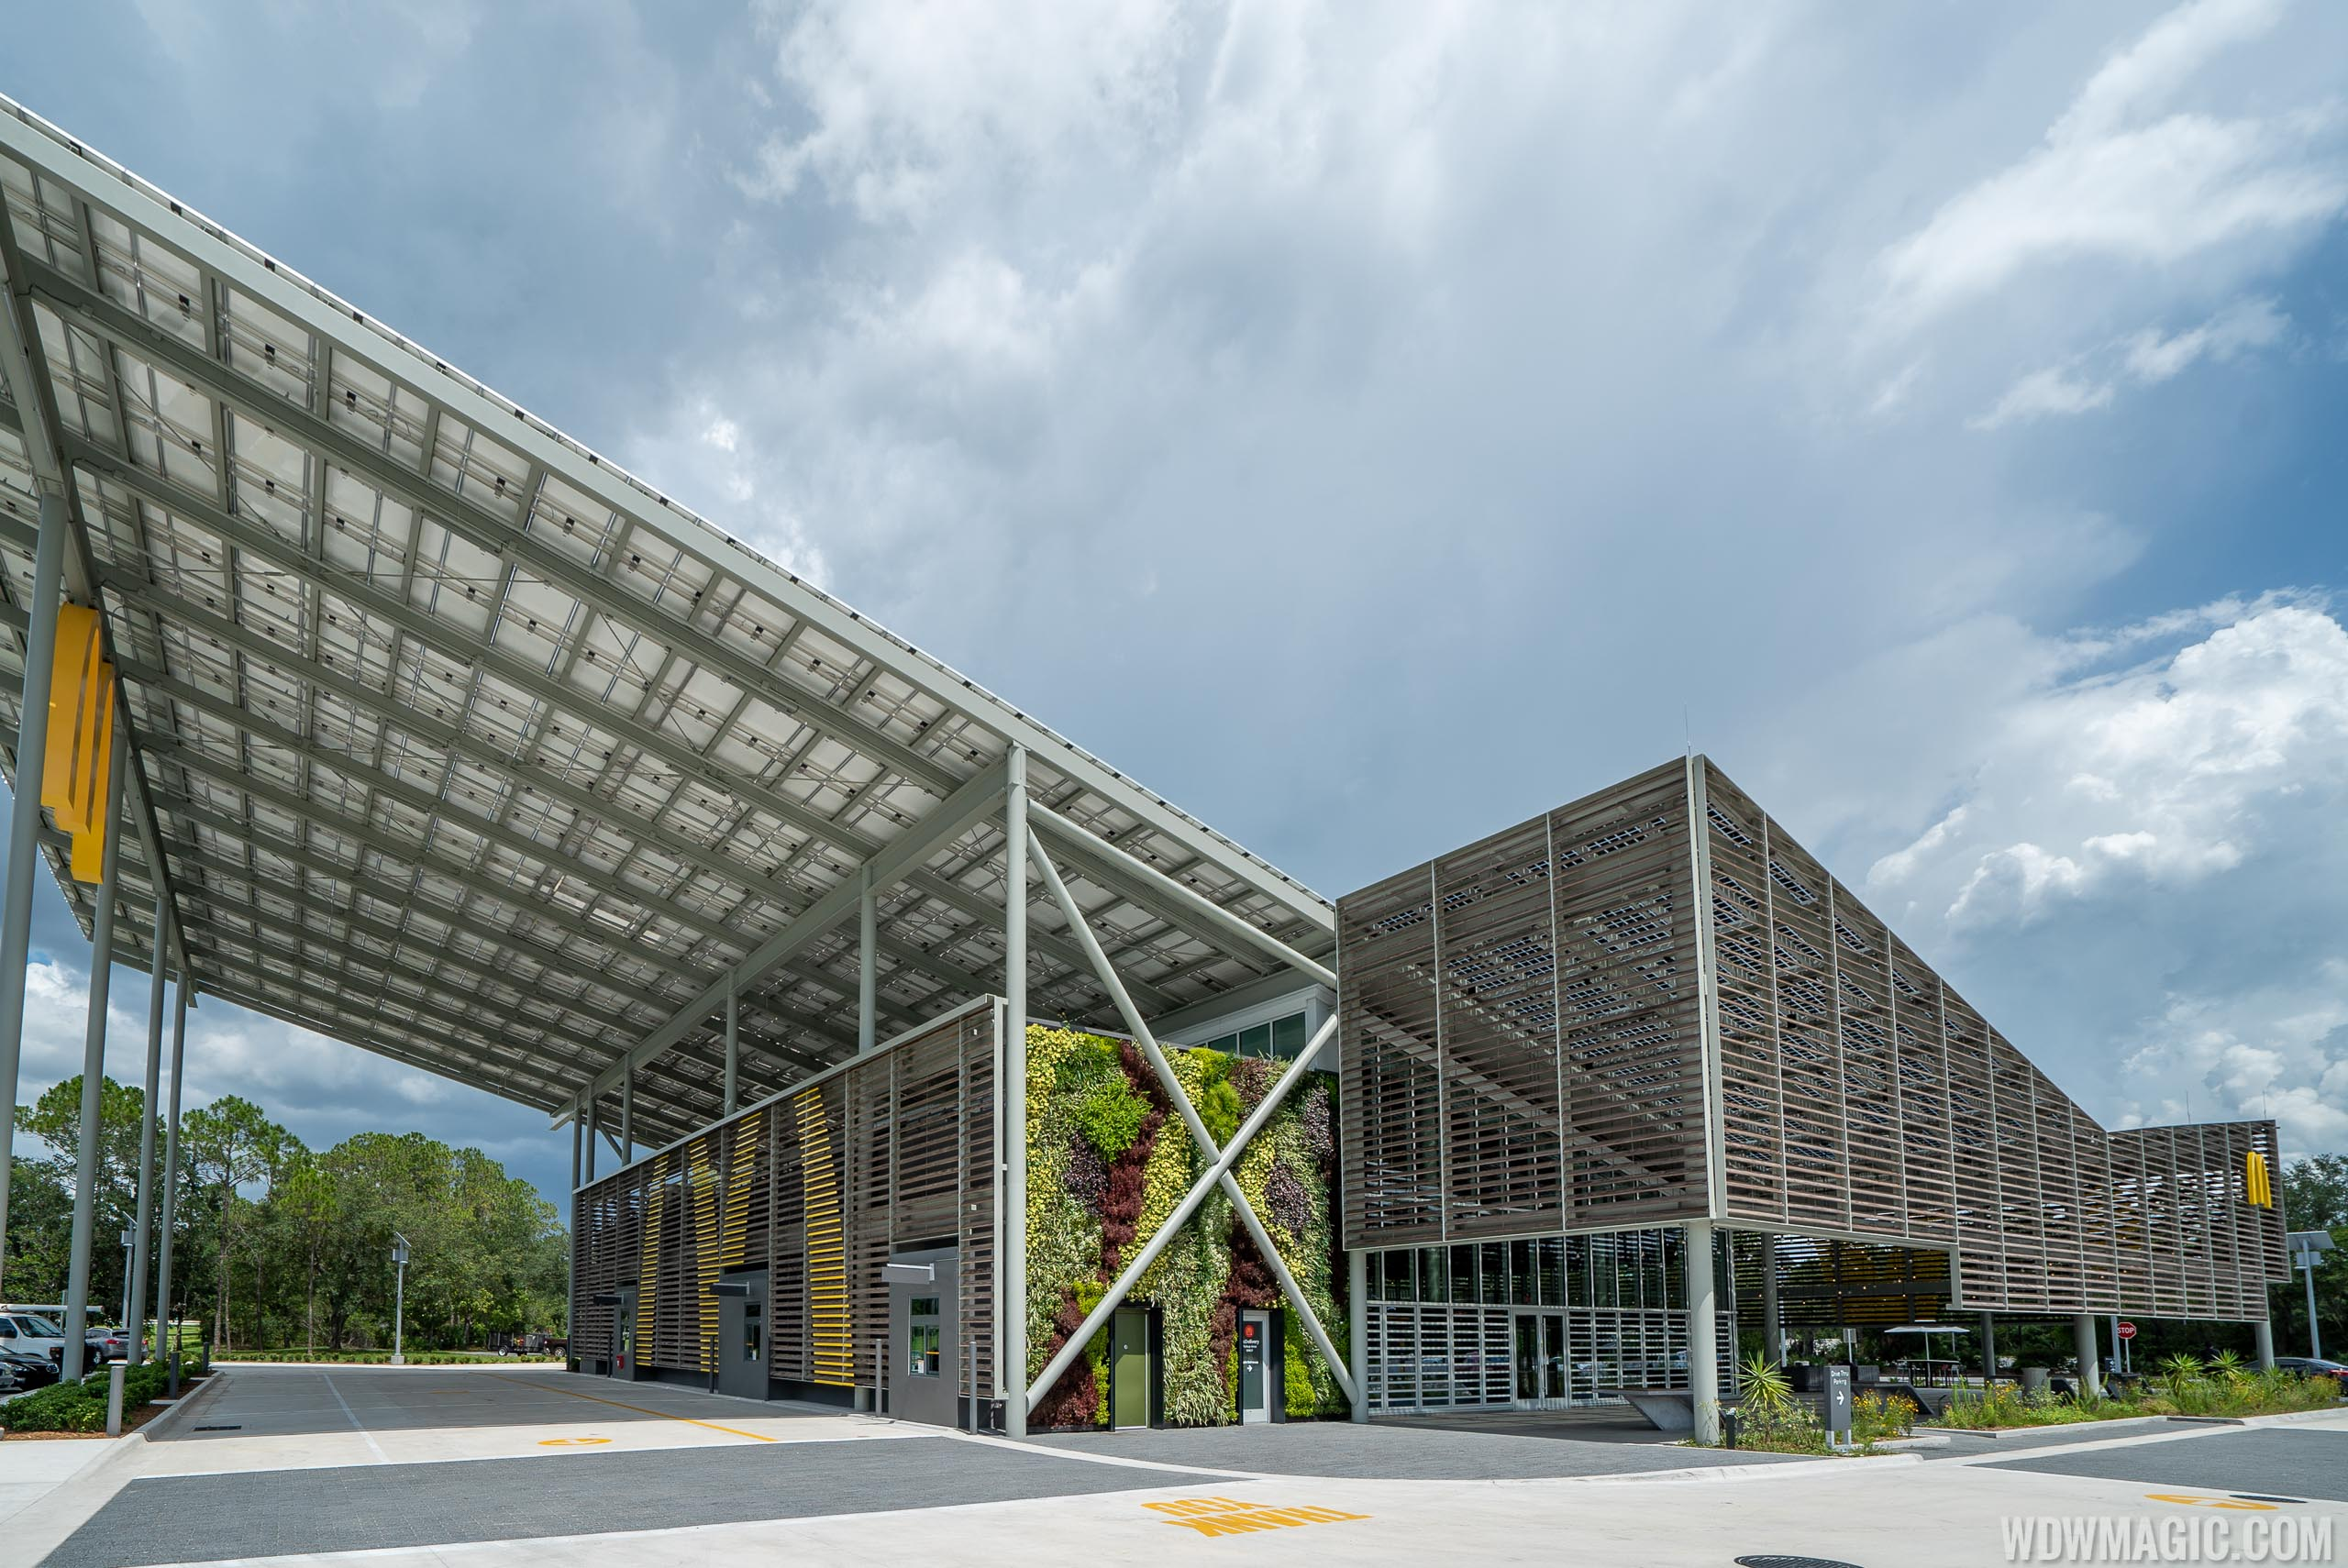 The wing-shaped structure is covered in solar panels